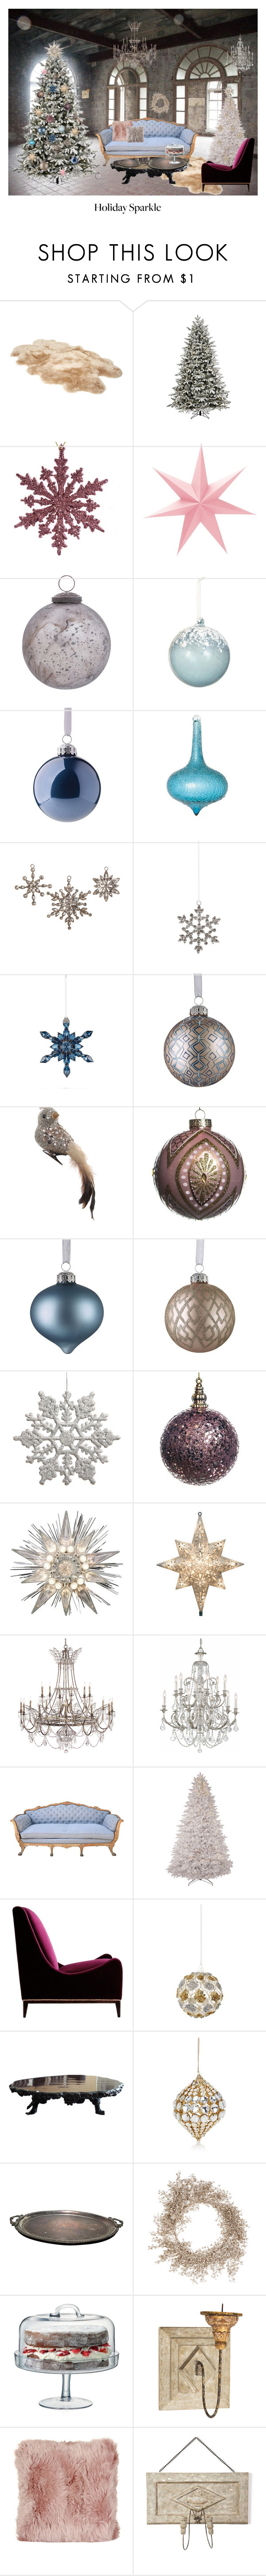 """""""Merry Christmas"""" by gabrielamovaseghi ❤ liked on Polyvore featuring interior, interiors, interior design, home, home decor, interior decorating, UGG, GE, Sage & Co. and Cultural Intrigue"""